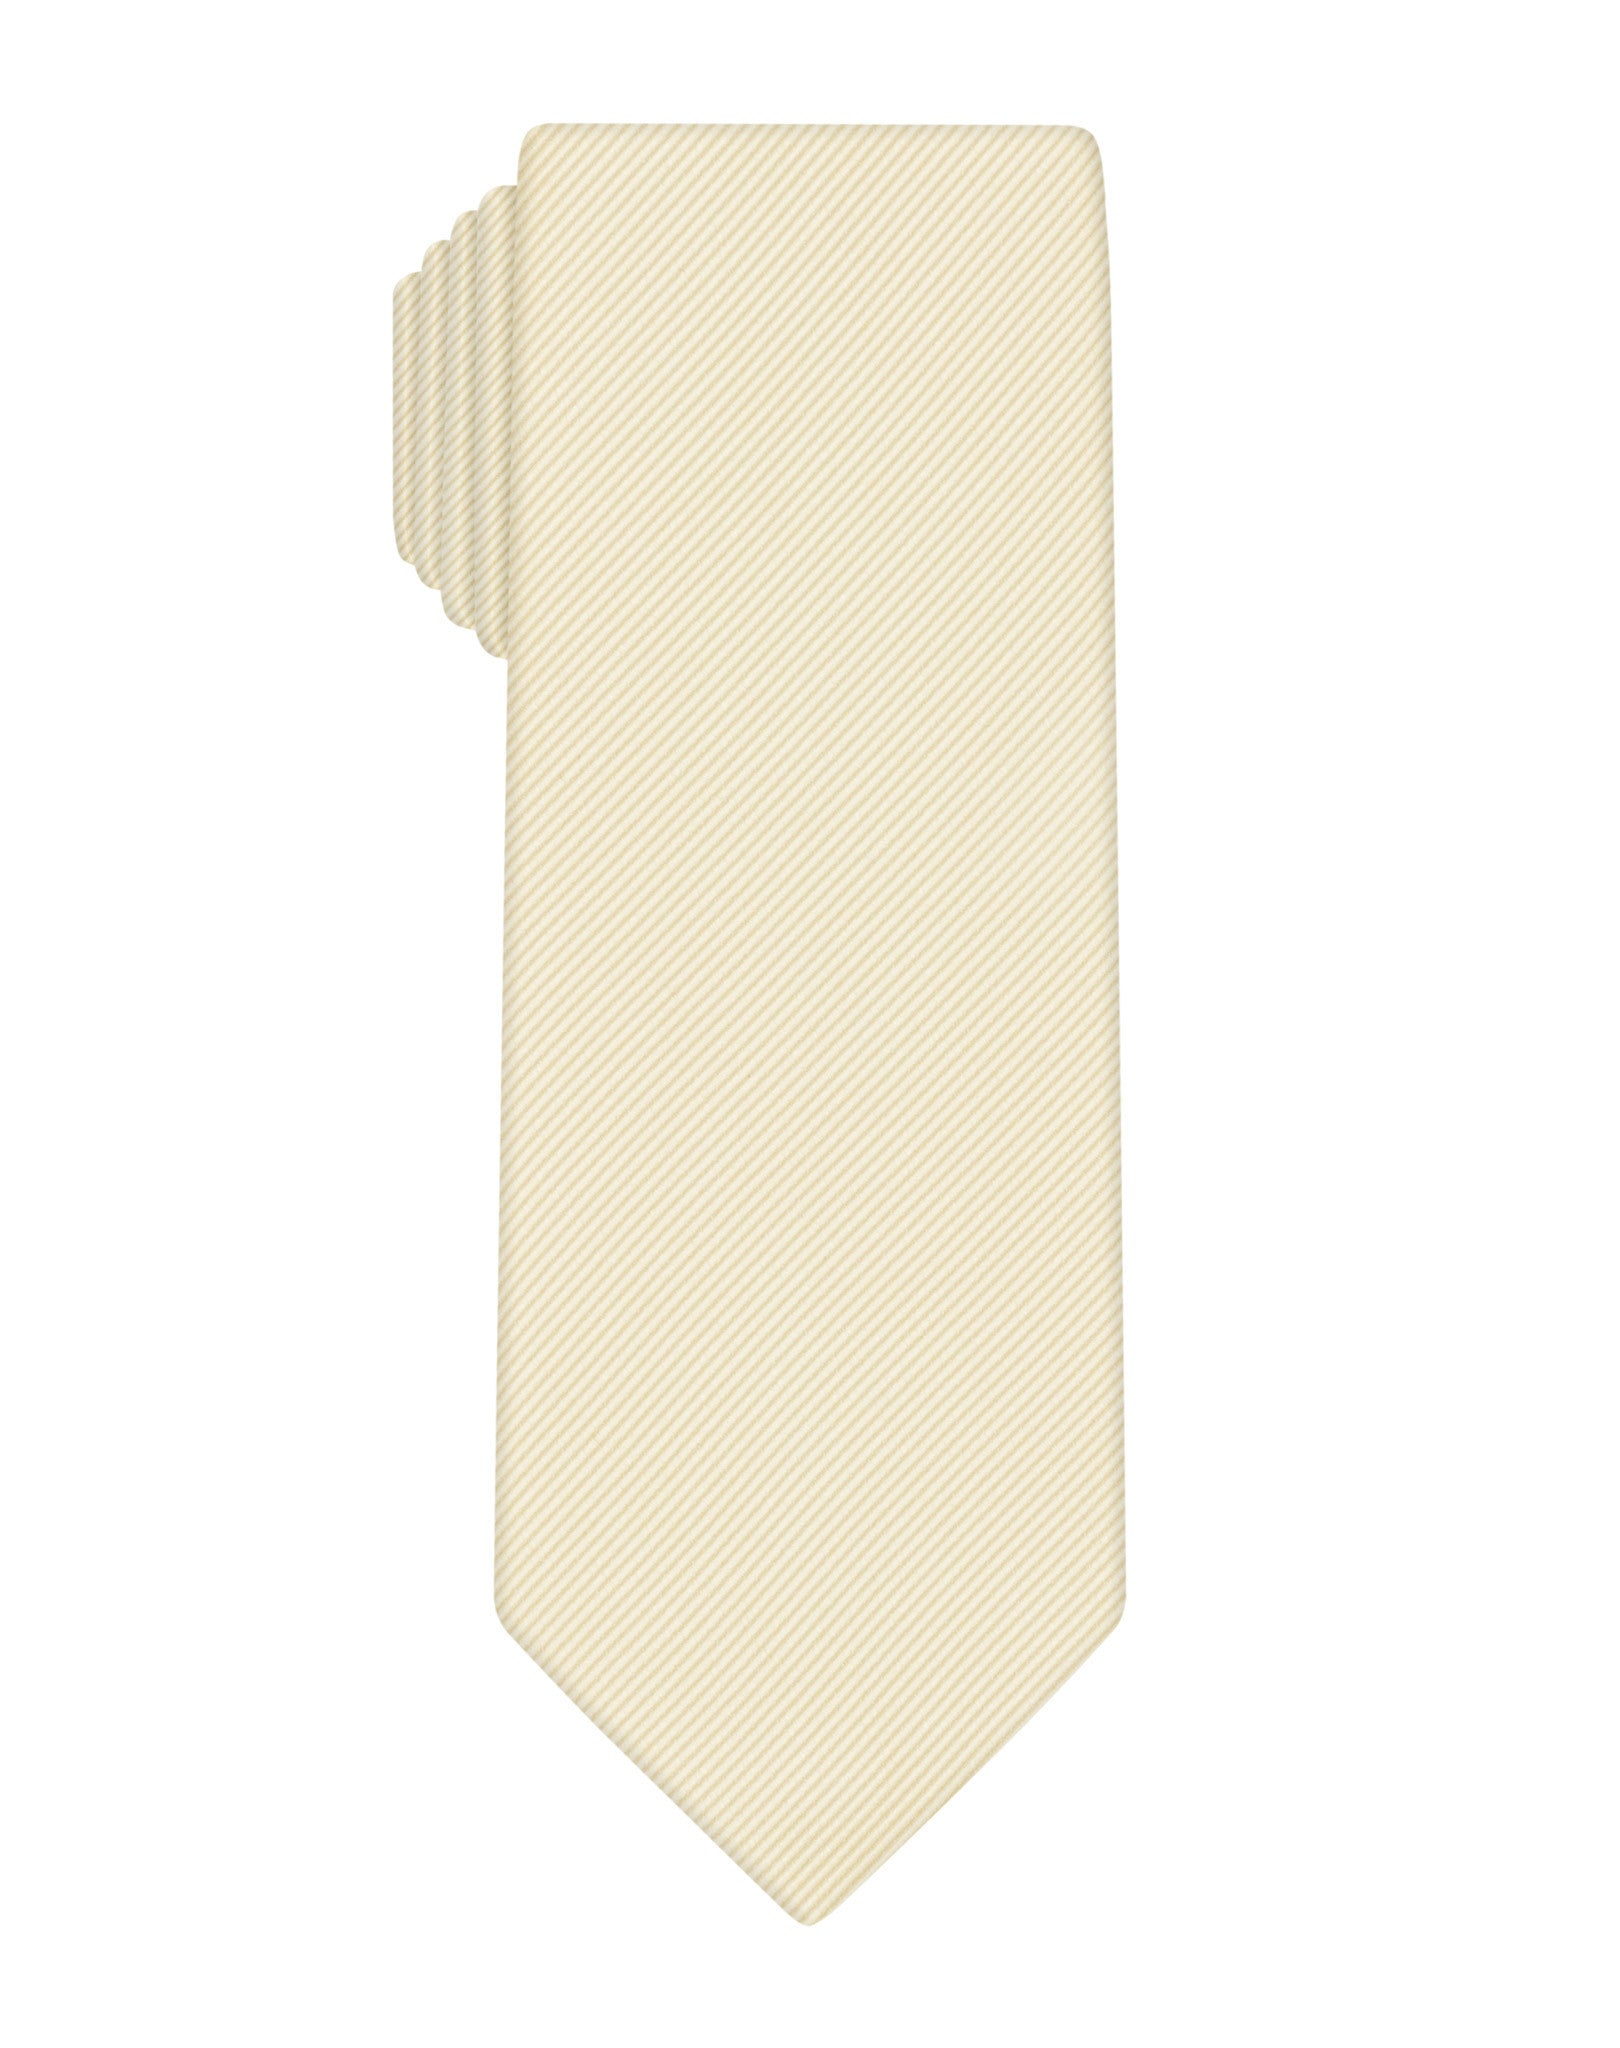 Champagne Solid Heavy Twill Tie